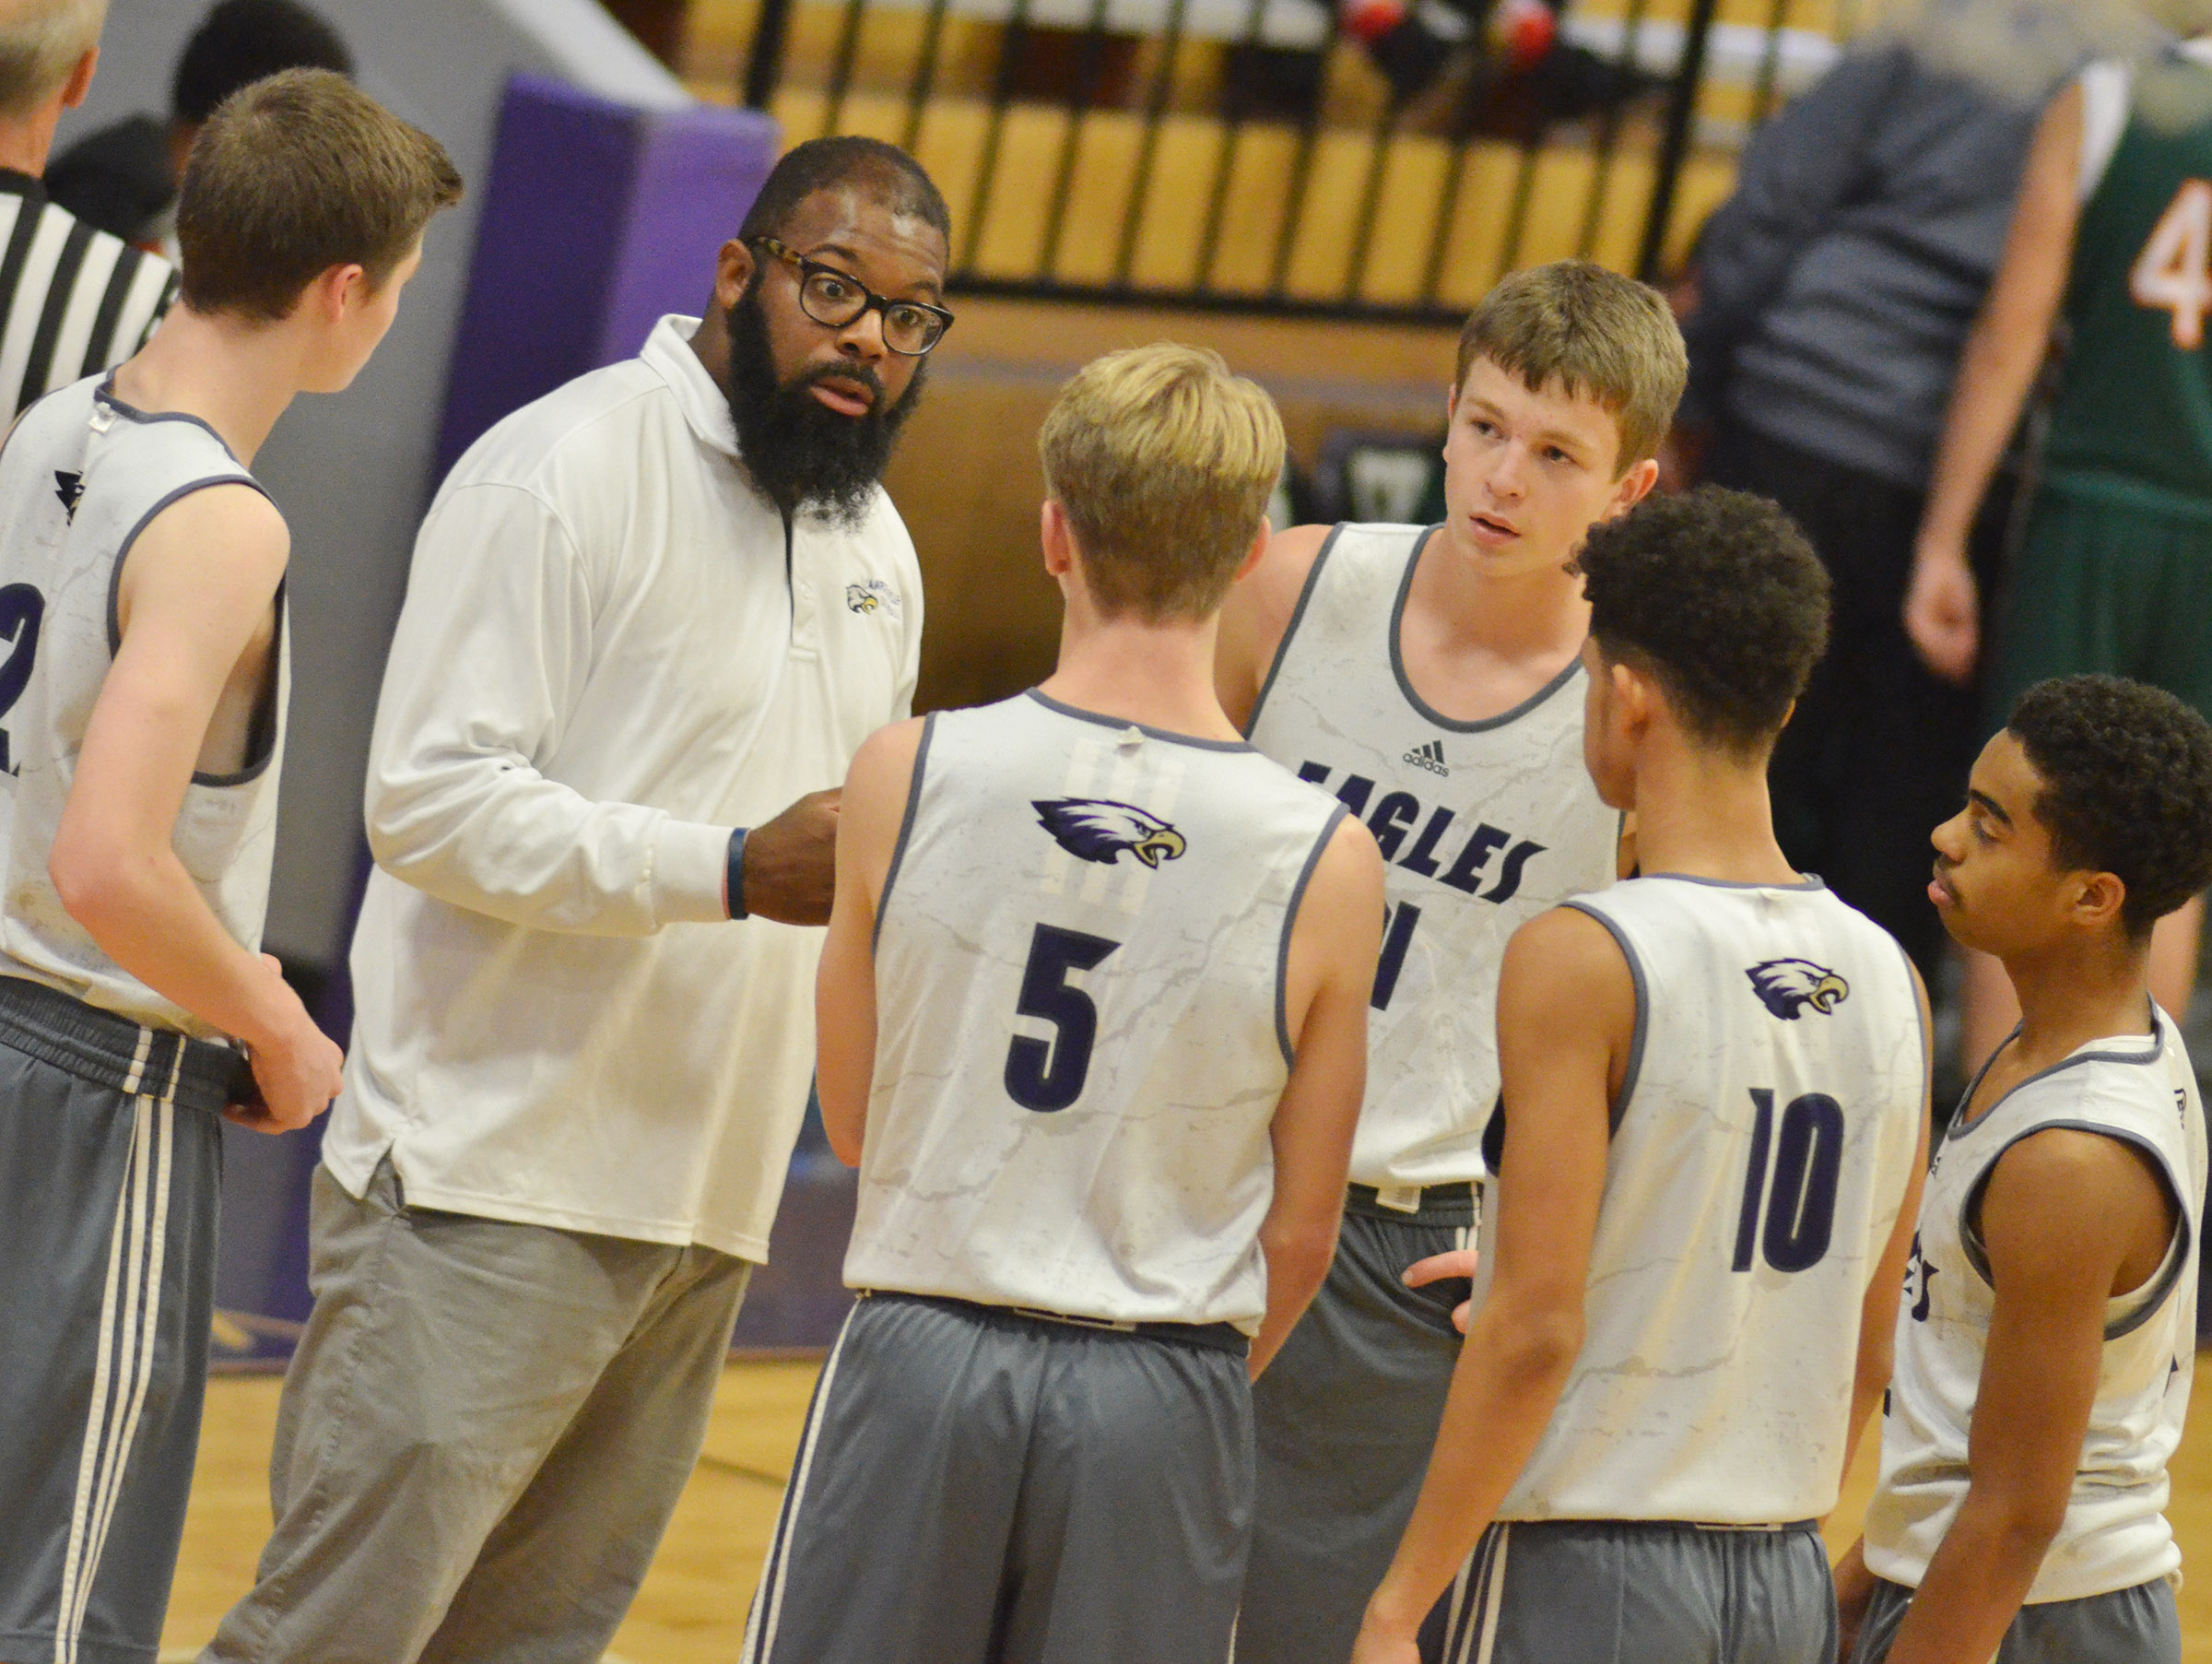 CHS boys' basketball assistant coach Will Griffin talks to his players.